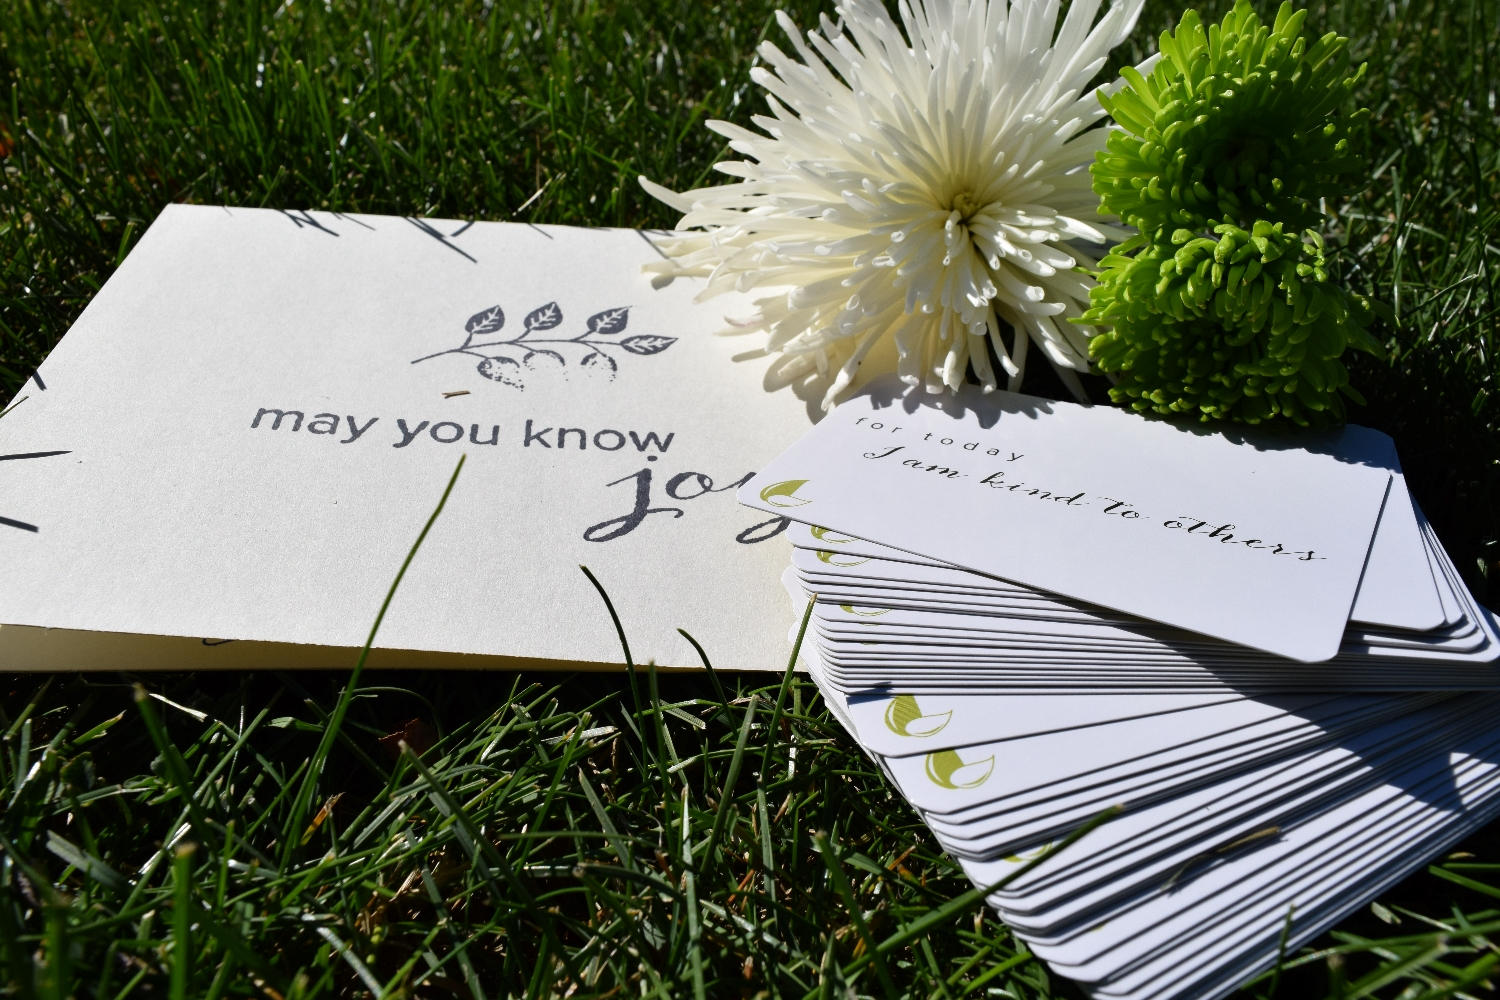 May You Know Joy Intention Cards. I am kind to others